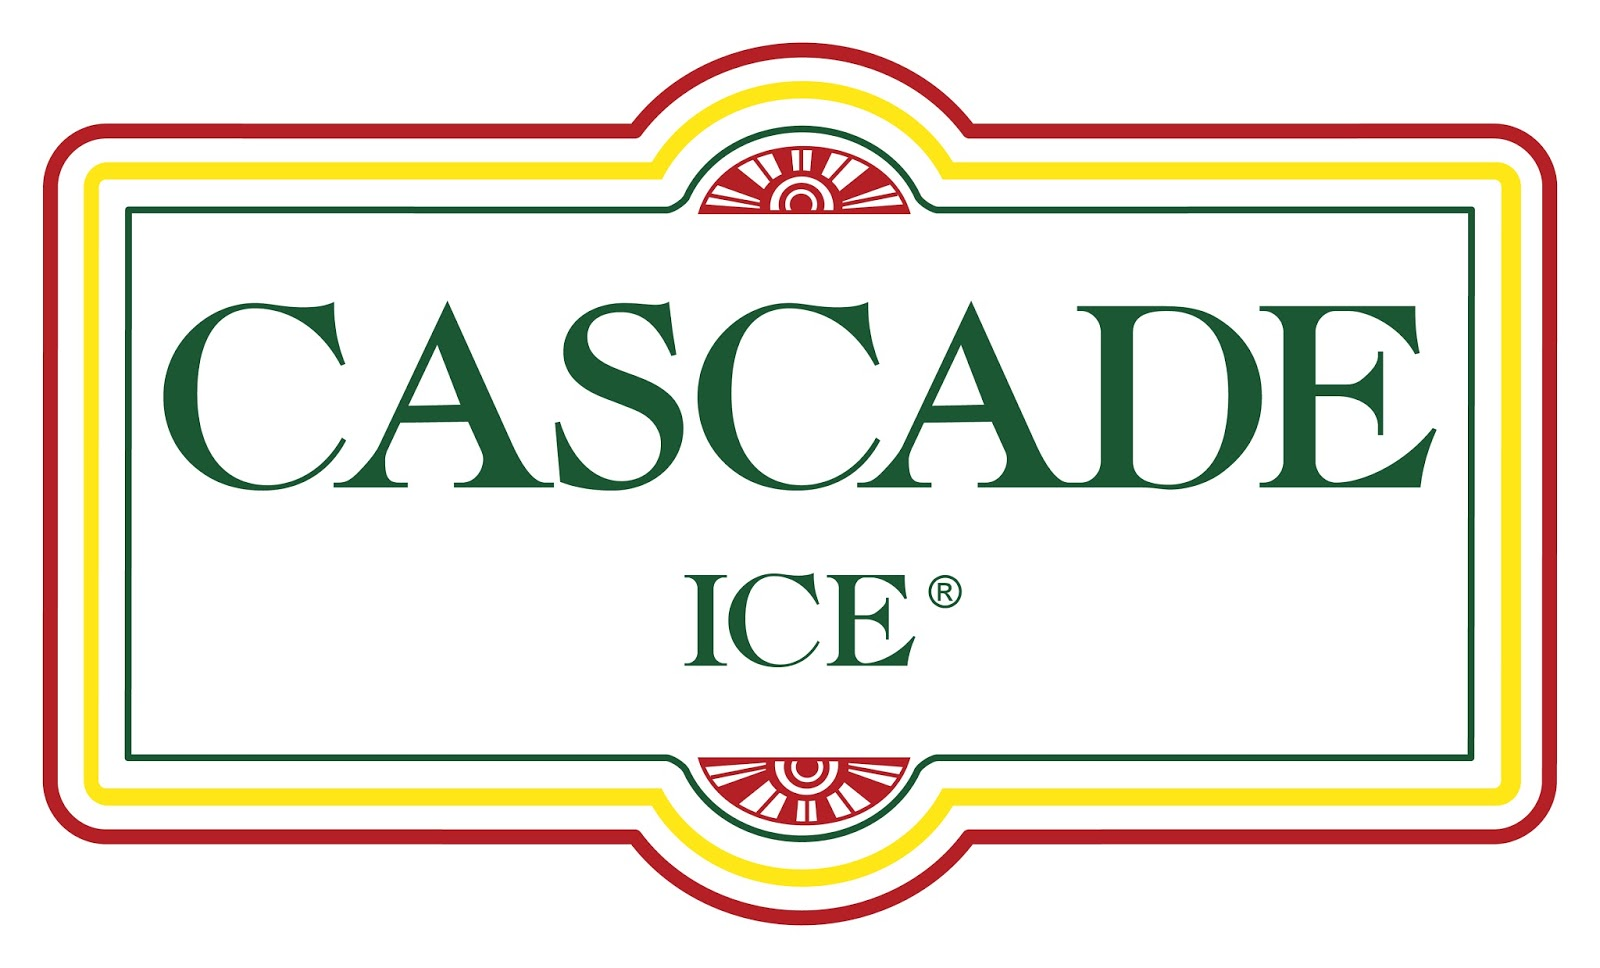 CASCADE ICE: Naturally Flavored Sparkling Water with Juice ...